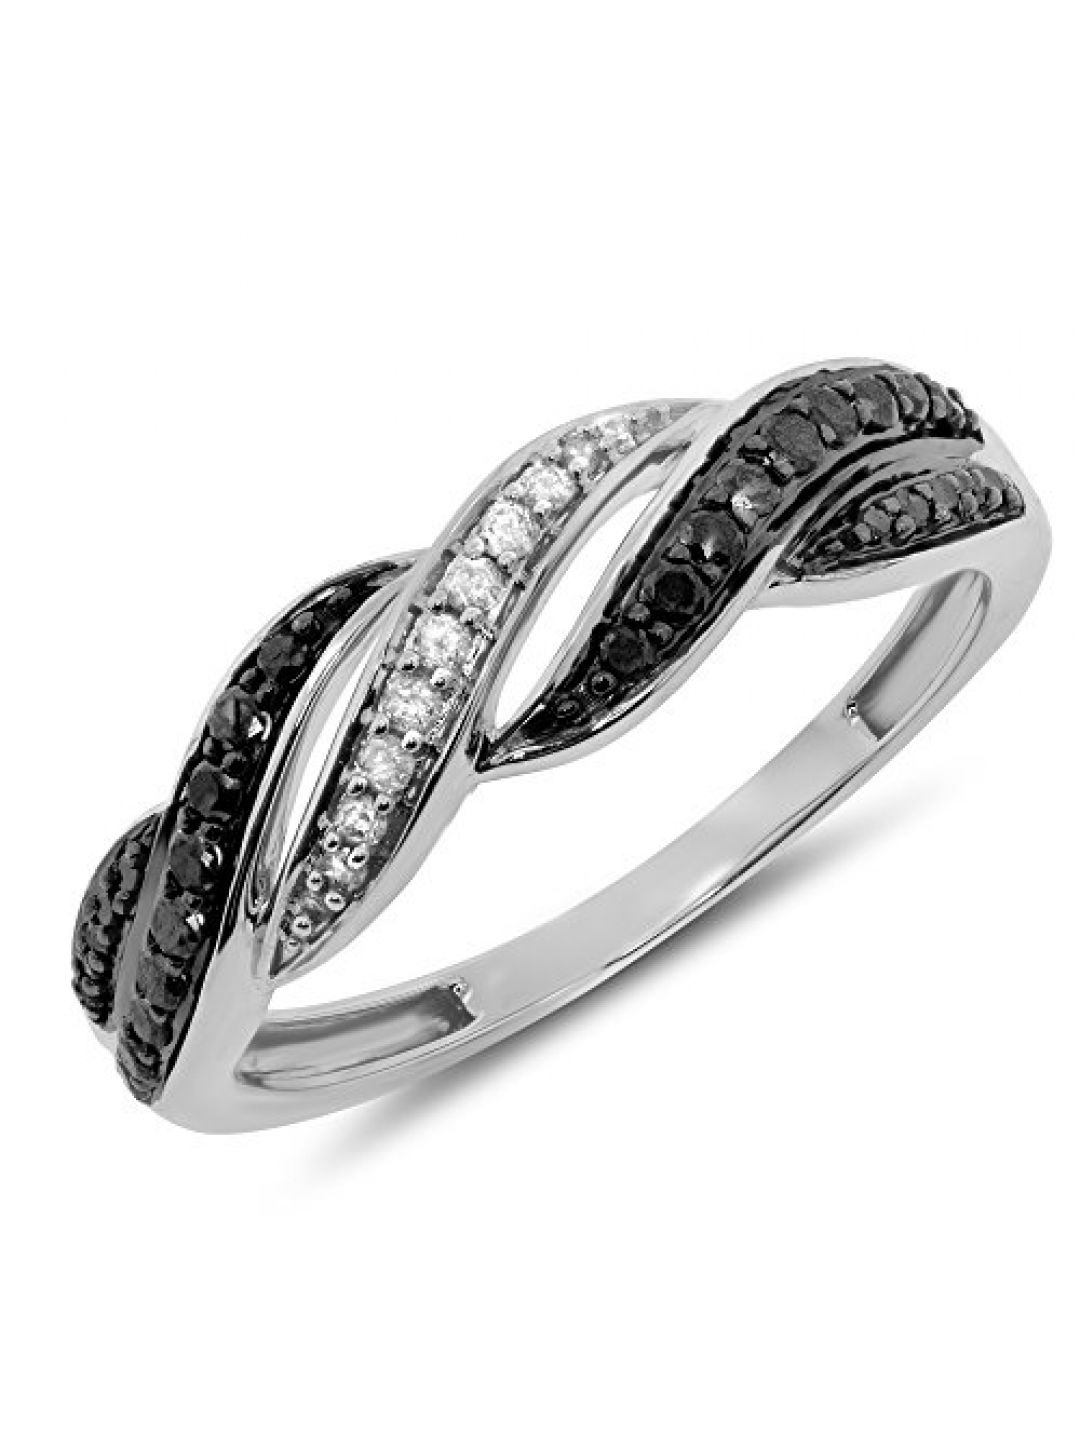 0.24 Carat (Ctw) 10K Two 2 Tone Gold Black Diamond Infinity Twisting Swirl  Anniversary Fashion Band Ring – White Gold, Size  (View 1 of 25)